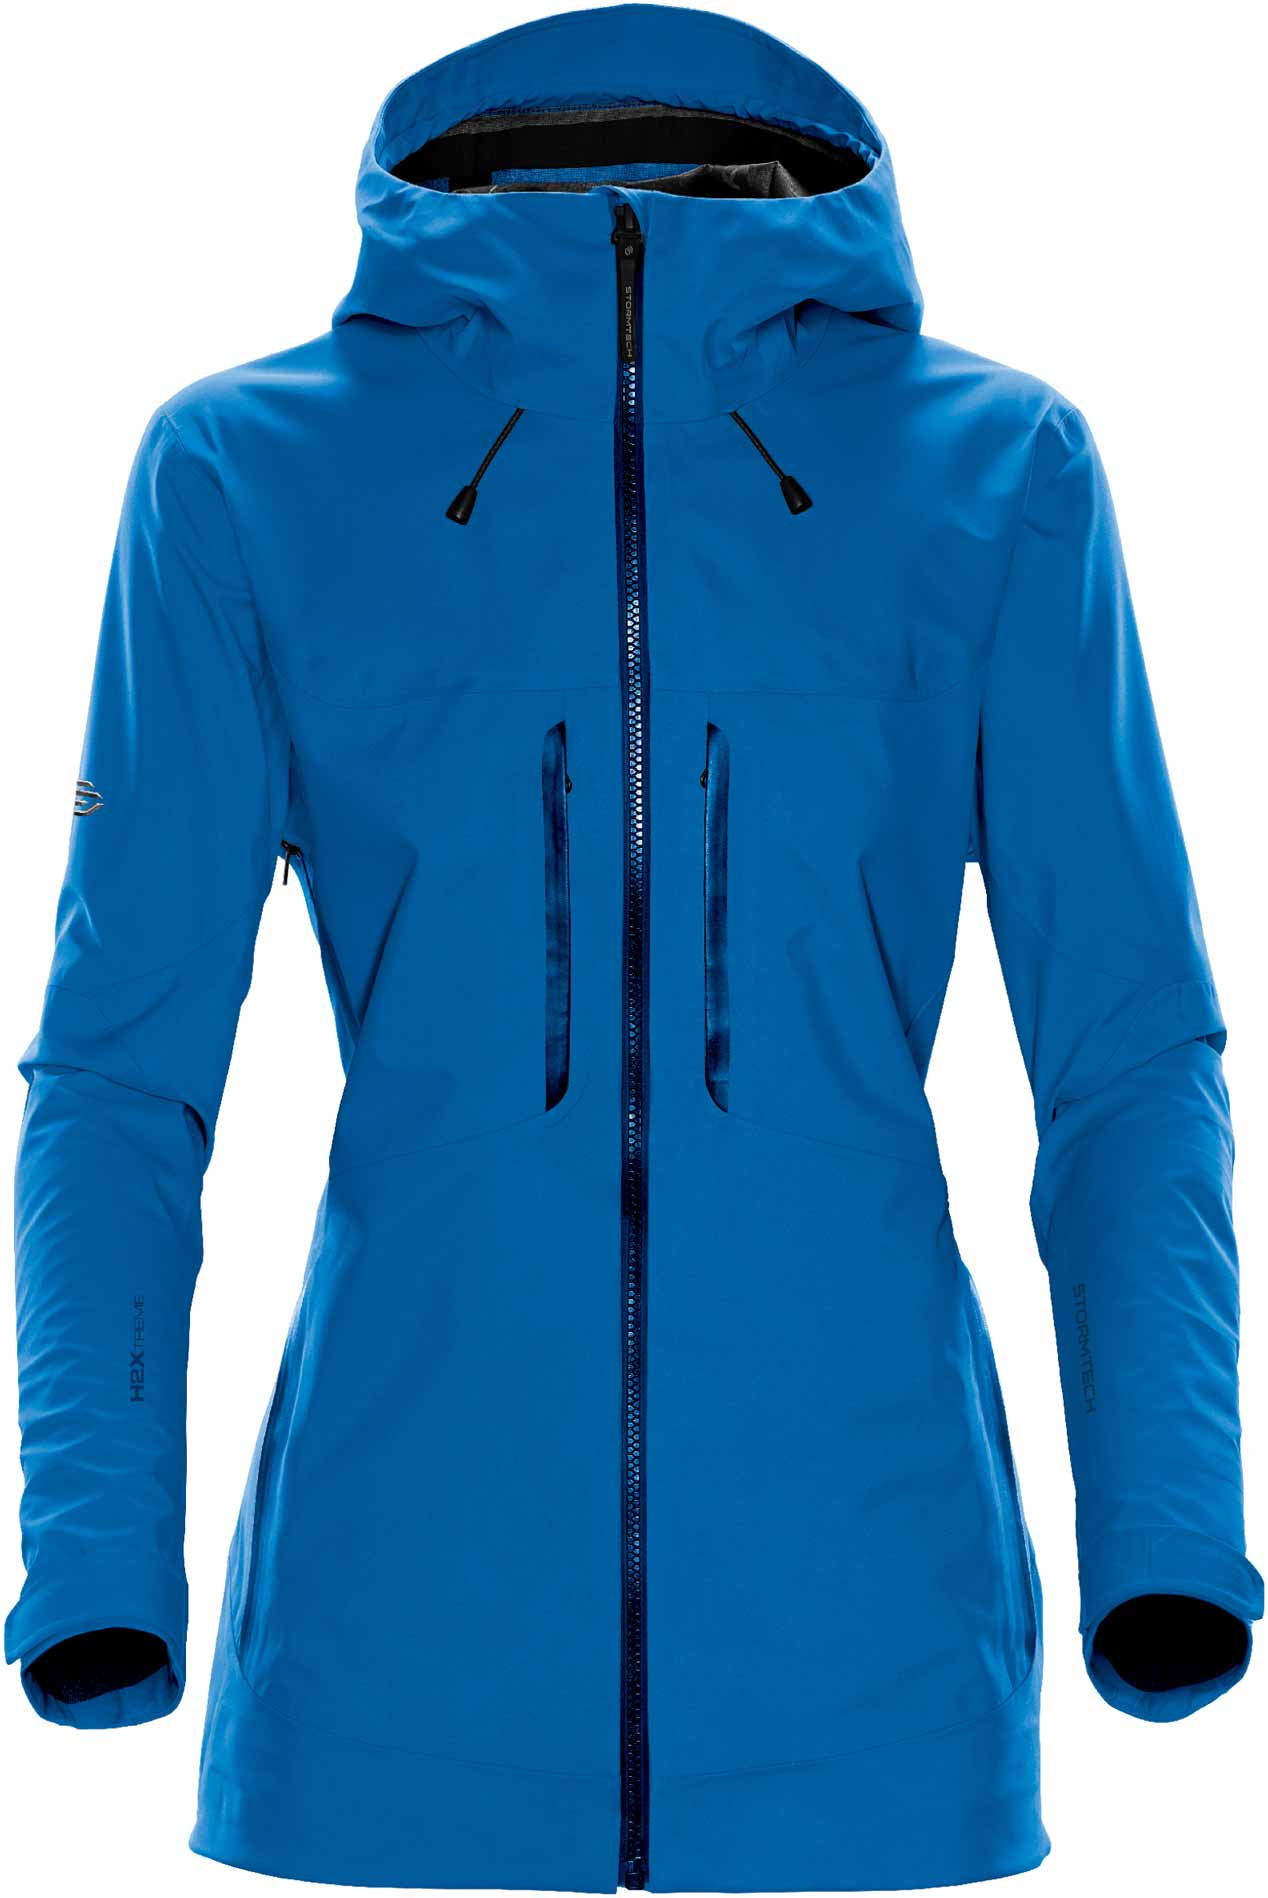 stormtech performance synthesis stormshell jackets insulated